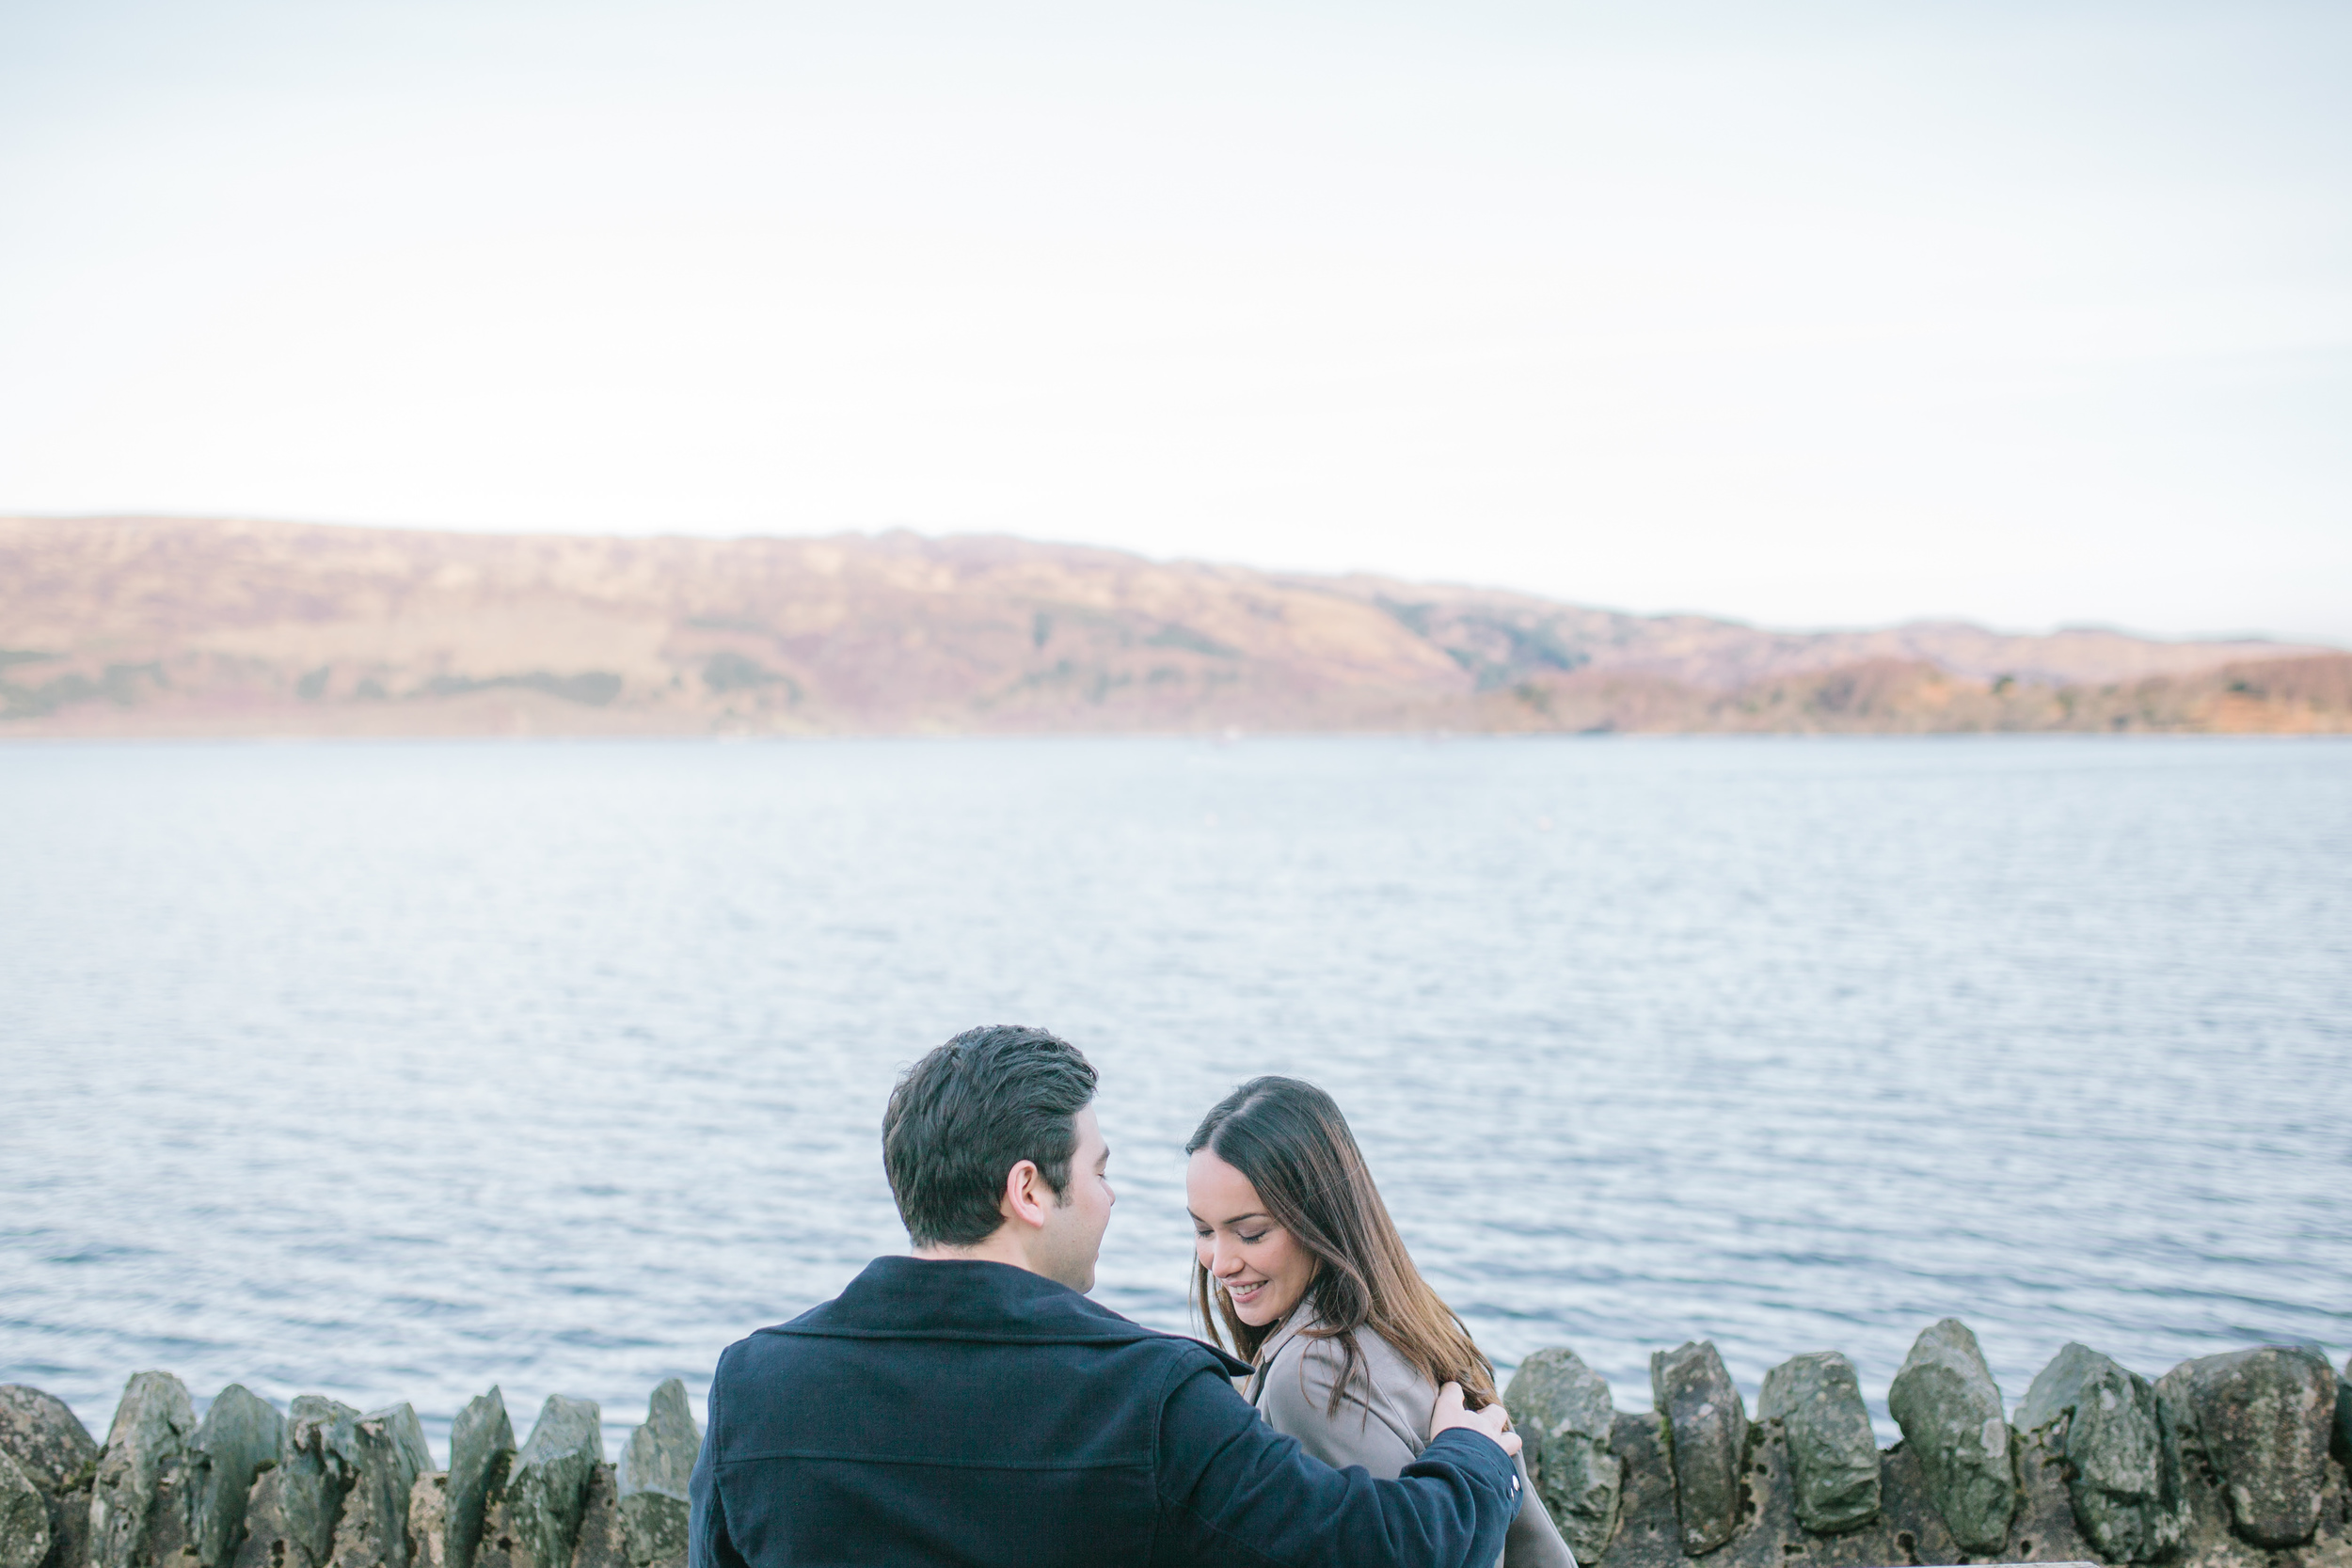 suzanne_li_photography_loch_lomand_pre_wedding-58.jpg